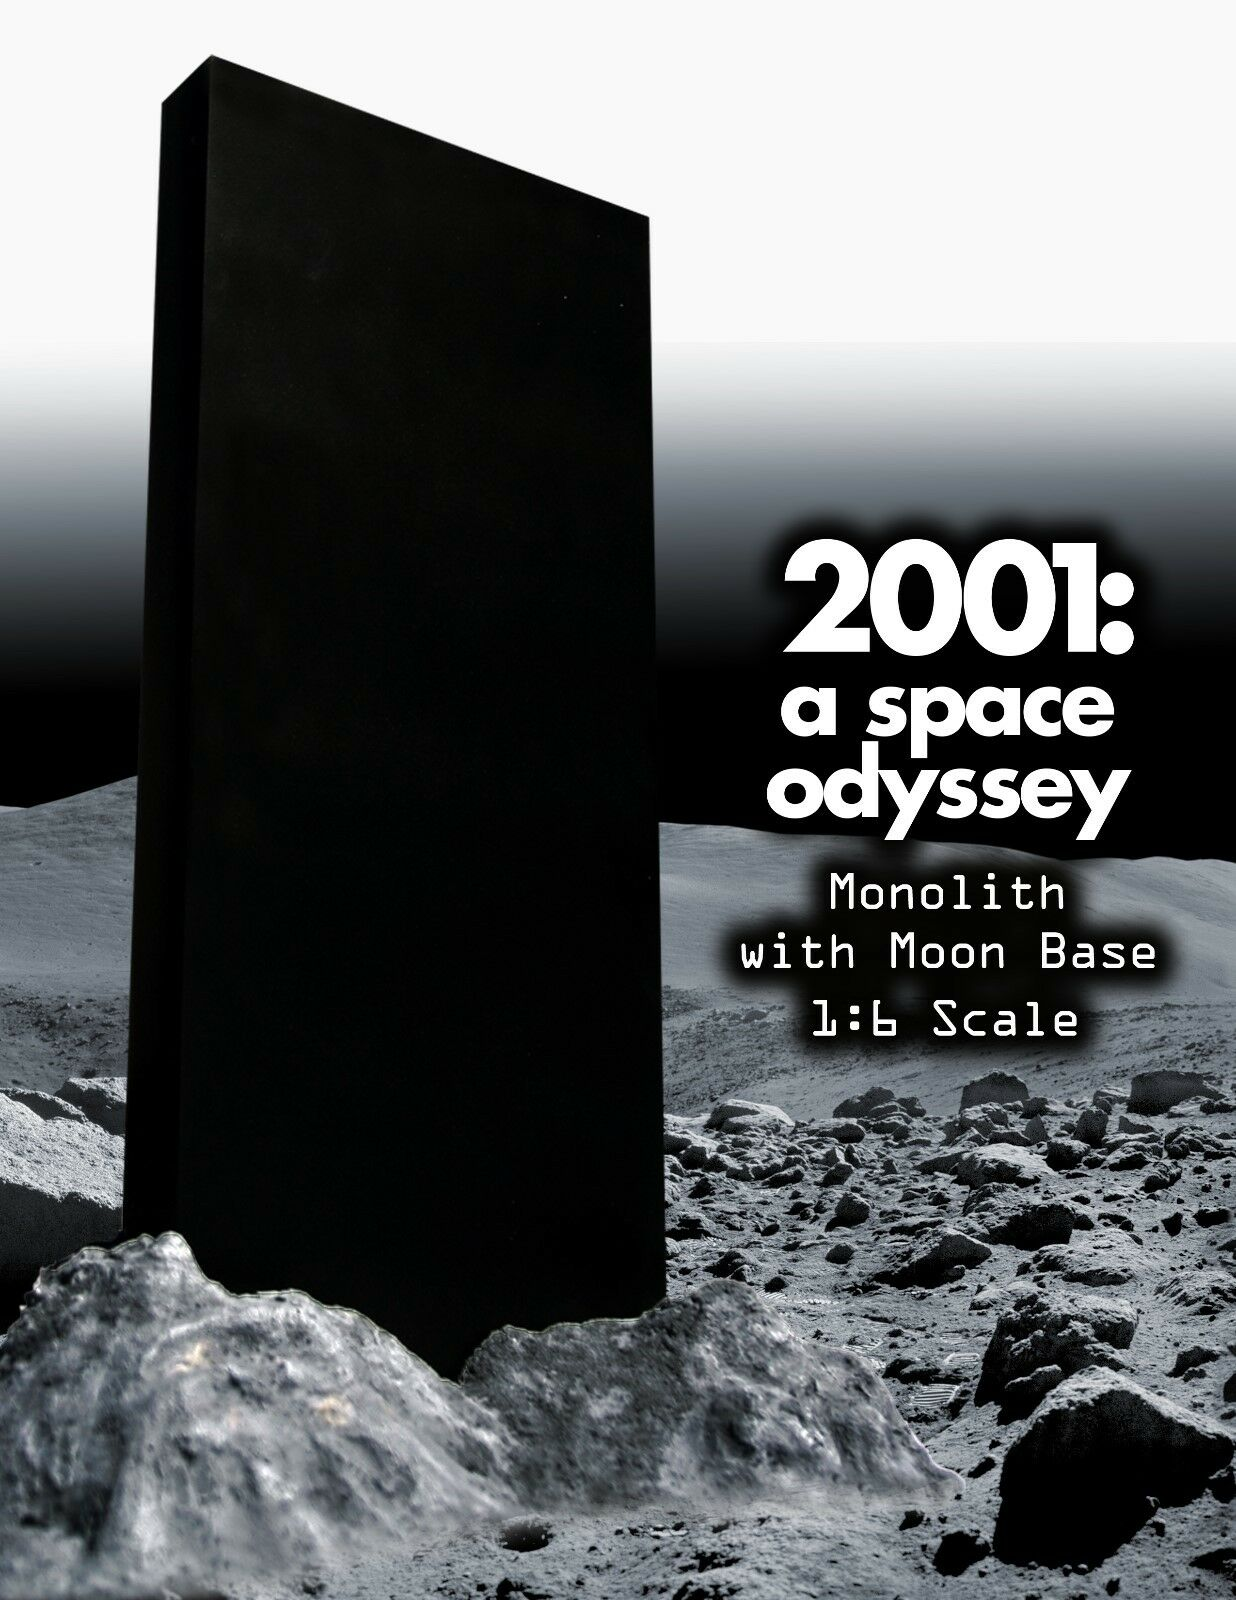 2001 A SPACE ODYSSEY 1/6TH MONOLITH/MOON BASE Astronaut Sci-Fi Travel